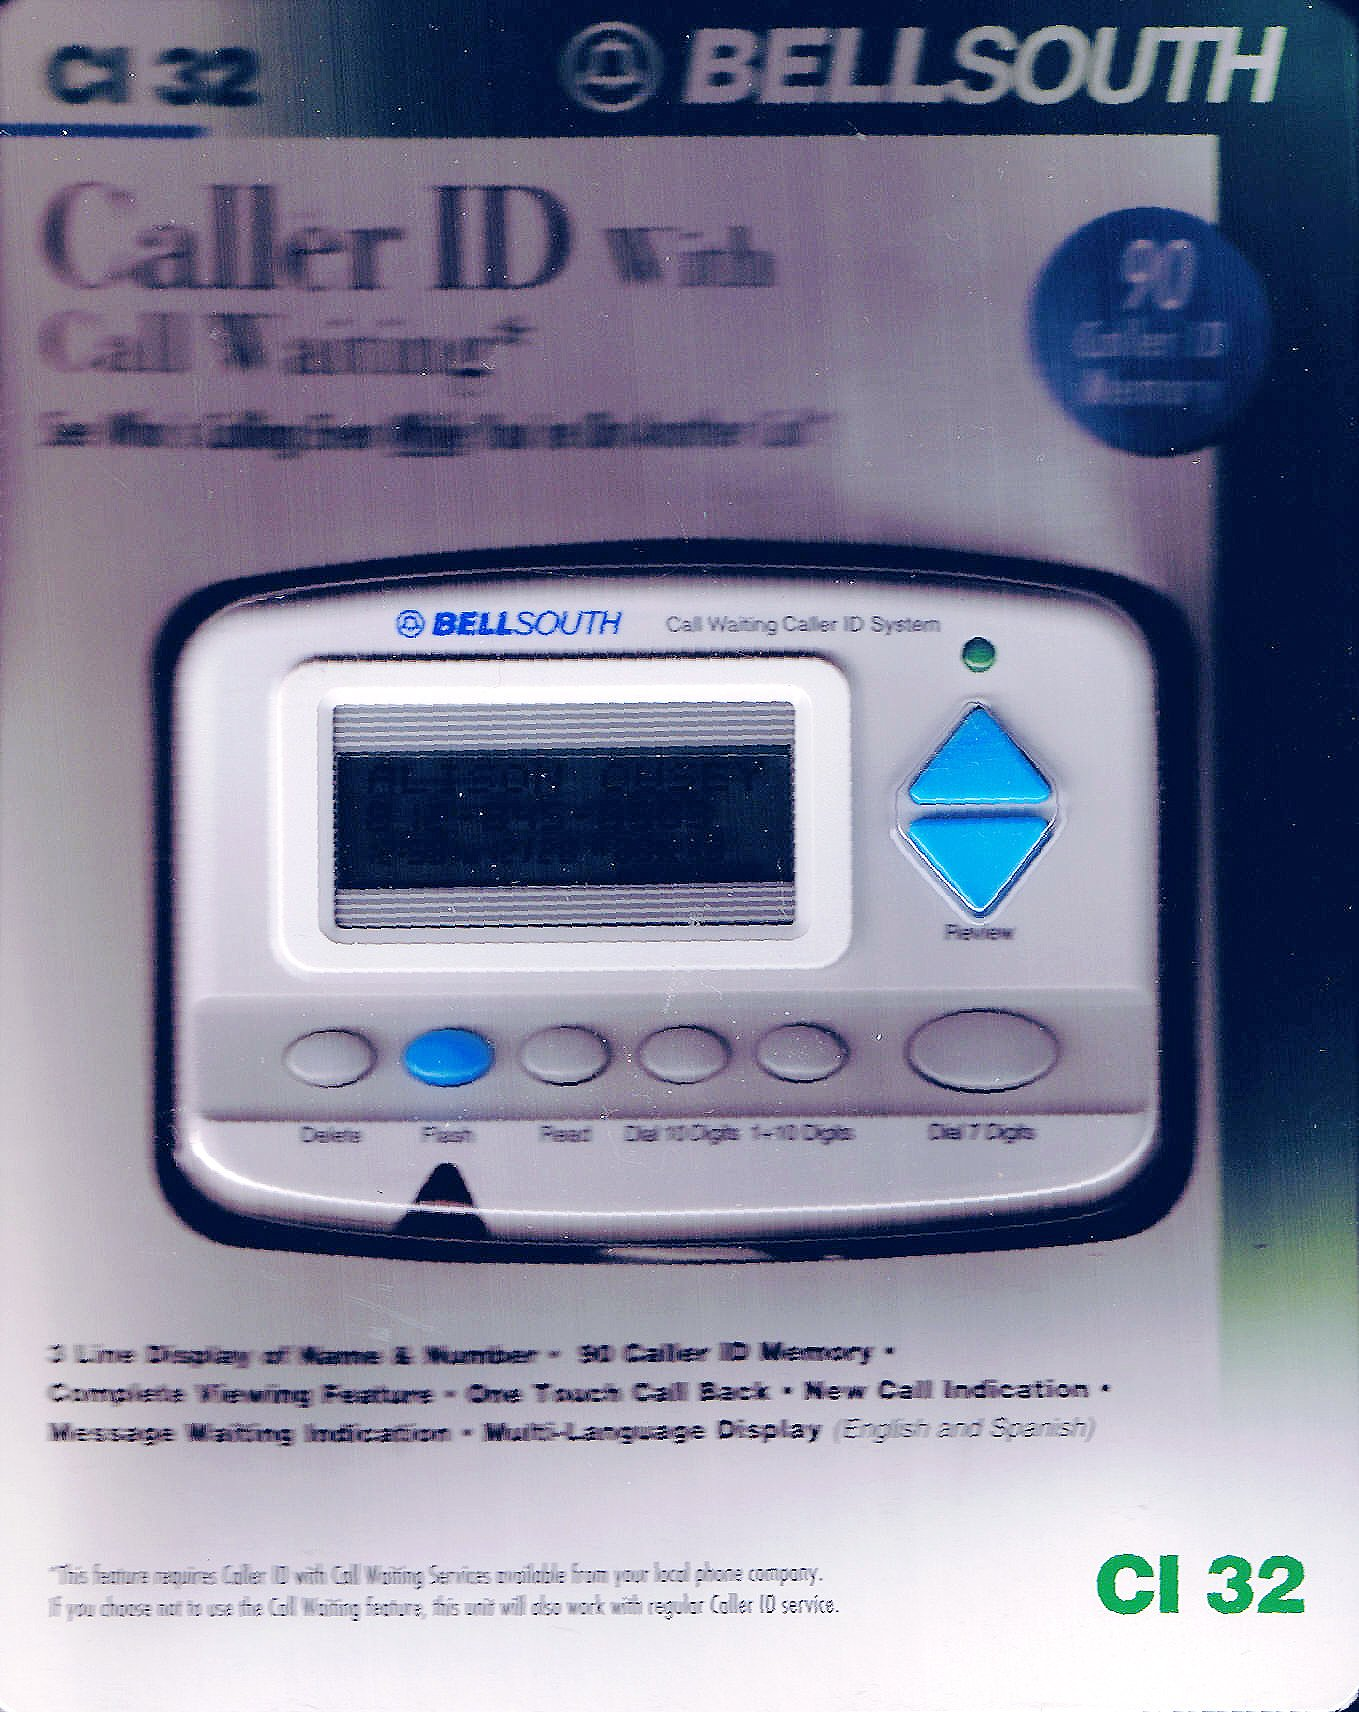 BellSouth Caller ID with Call Waiting CI-85LX English or Spanish Display